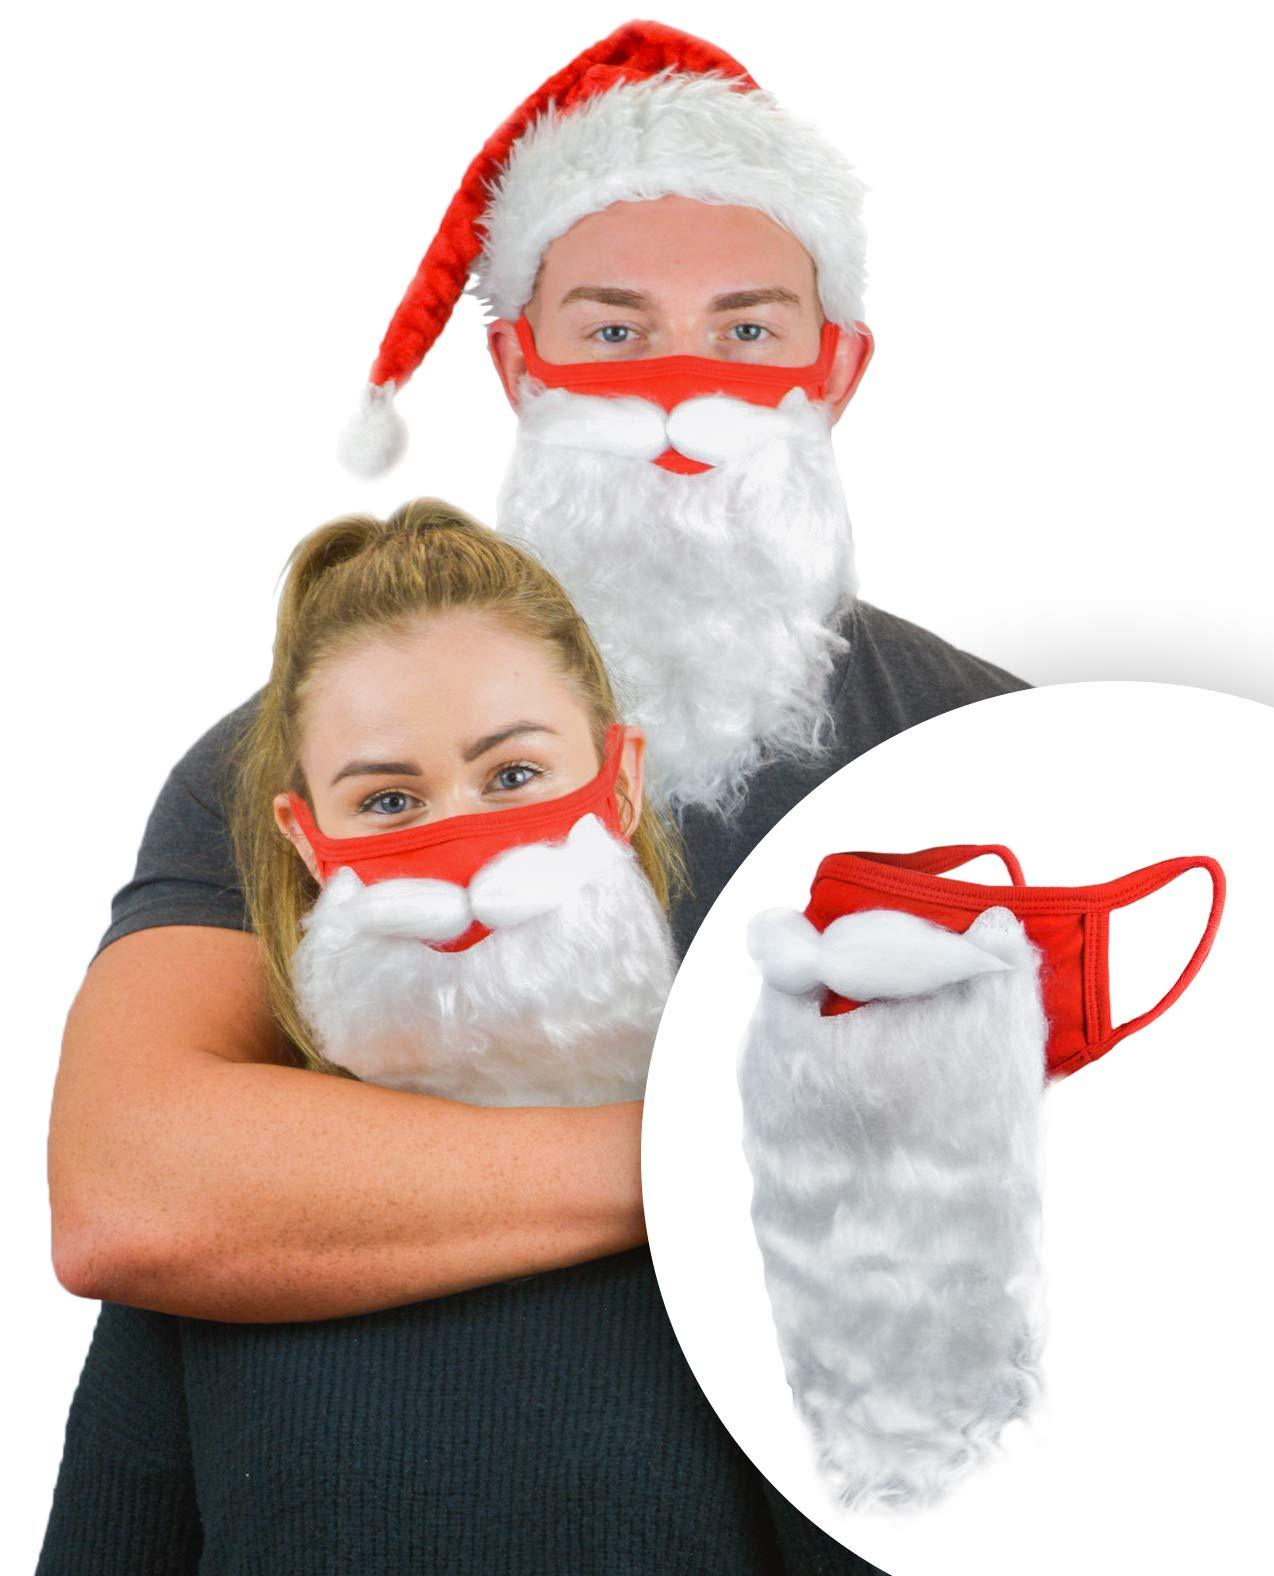 🔥PRE-XMAS SALE🔥 2020 Santa Claus Face Costume